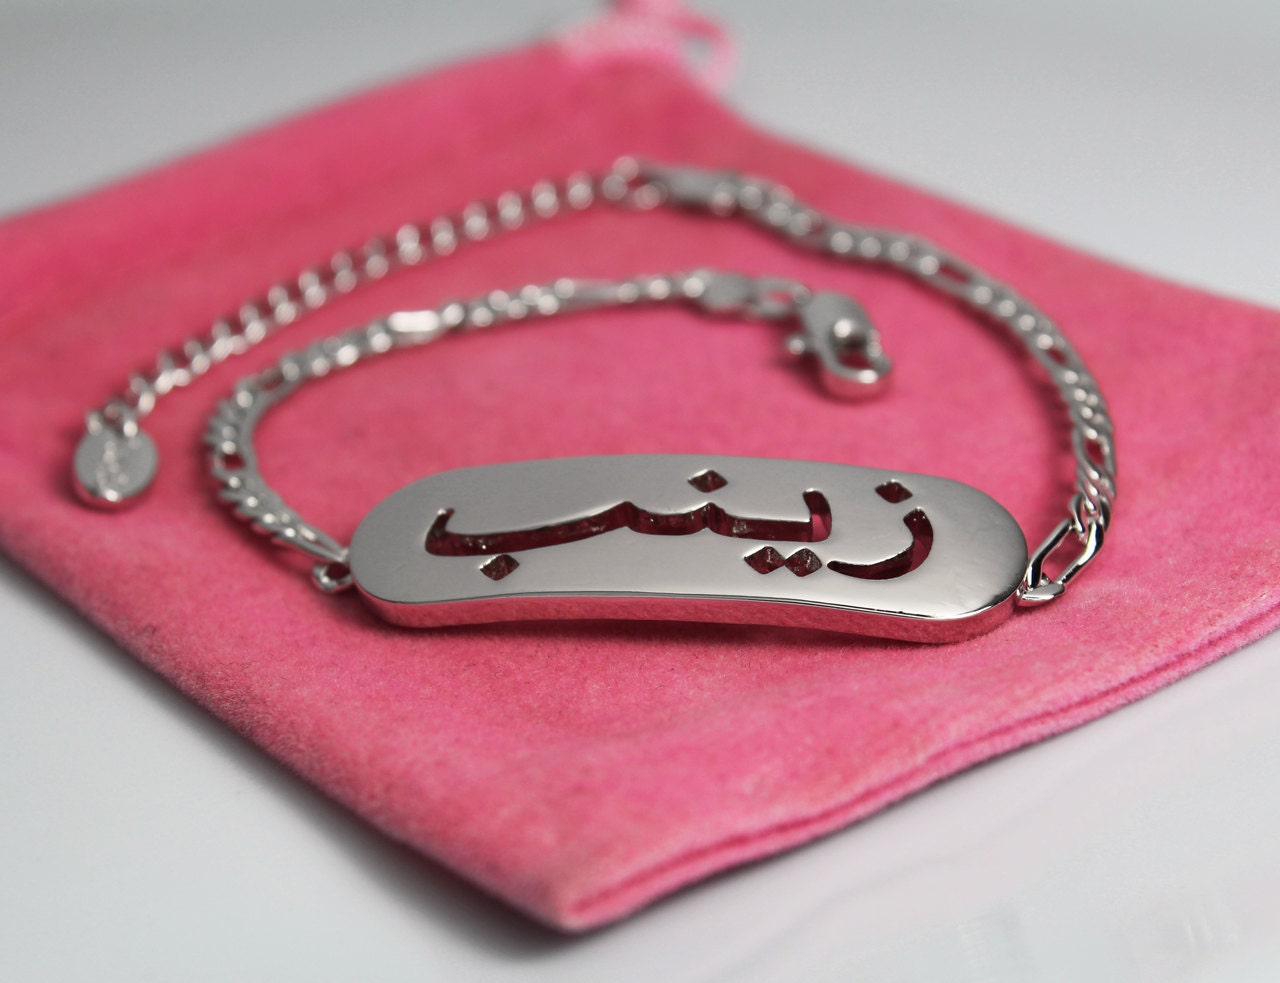 Name Bracelet Zainab Zeinab Zaynab In Arabic 18K Gold